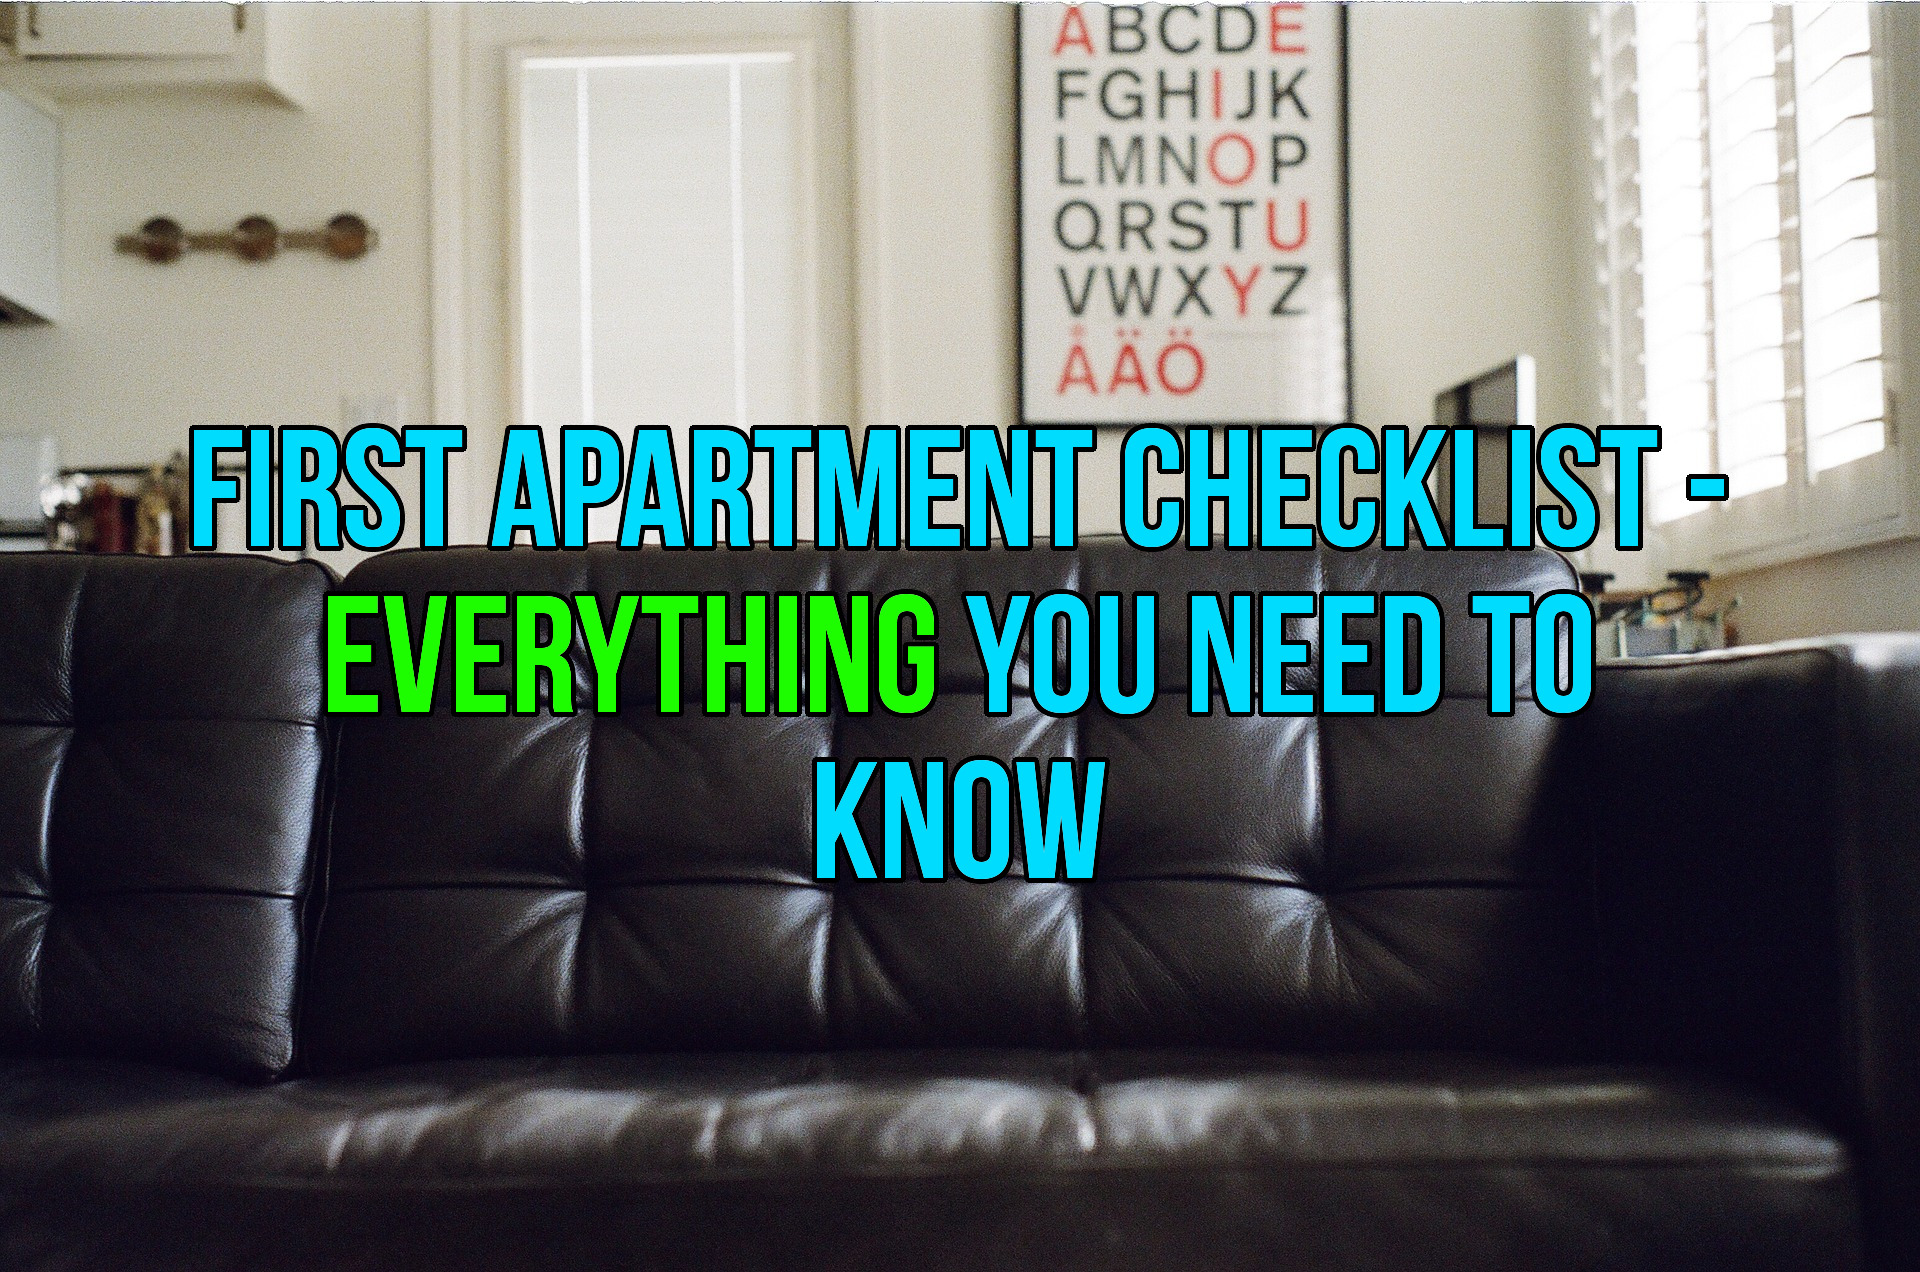 First Apartment Checklist - What You Should Know - Life Hacks